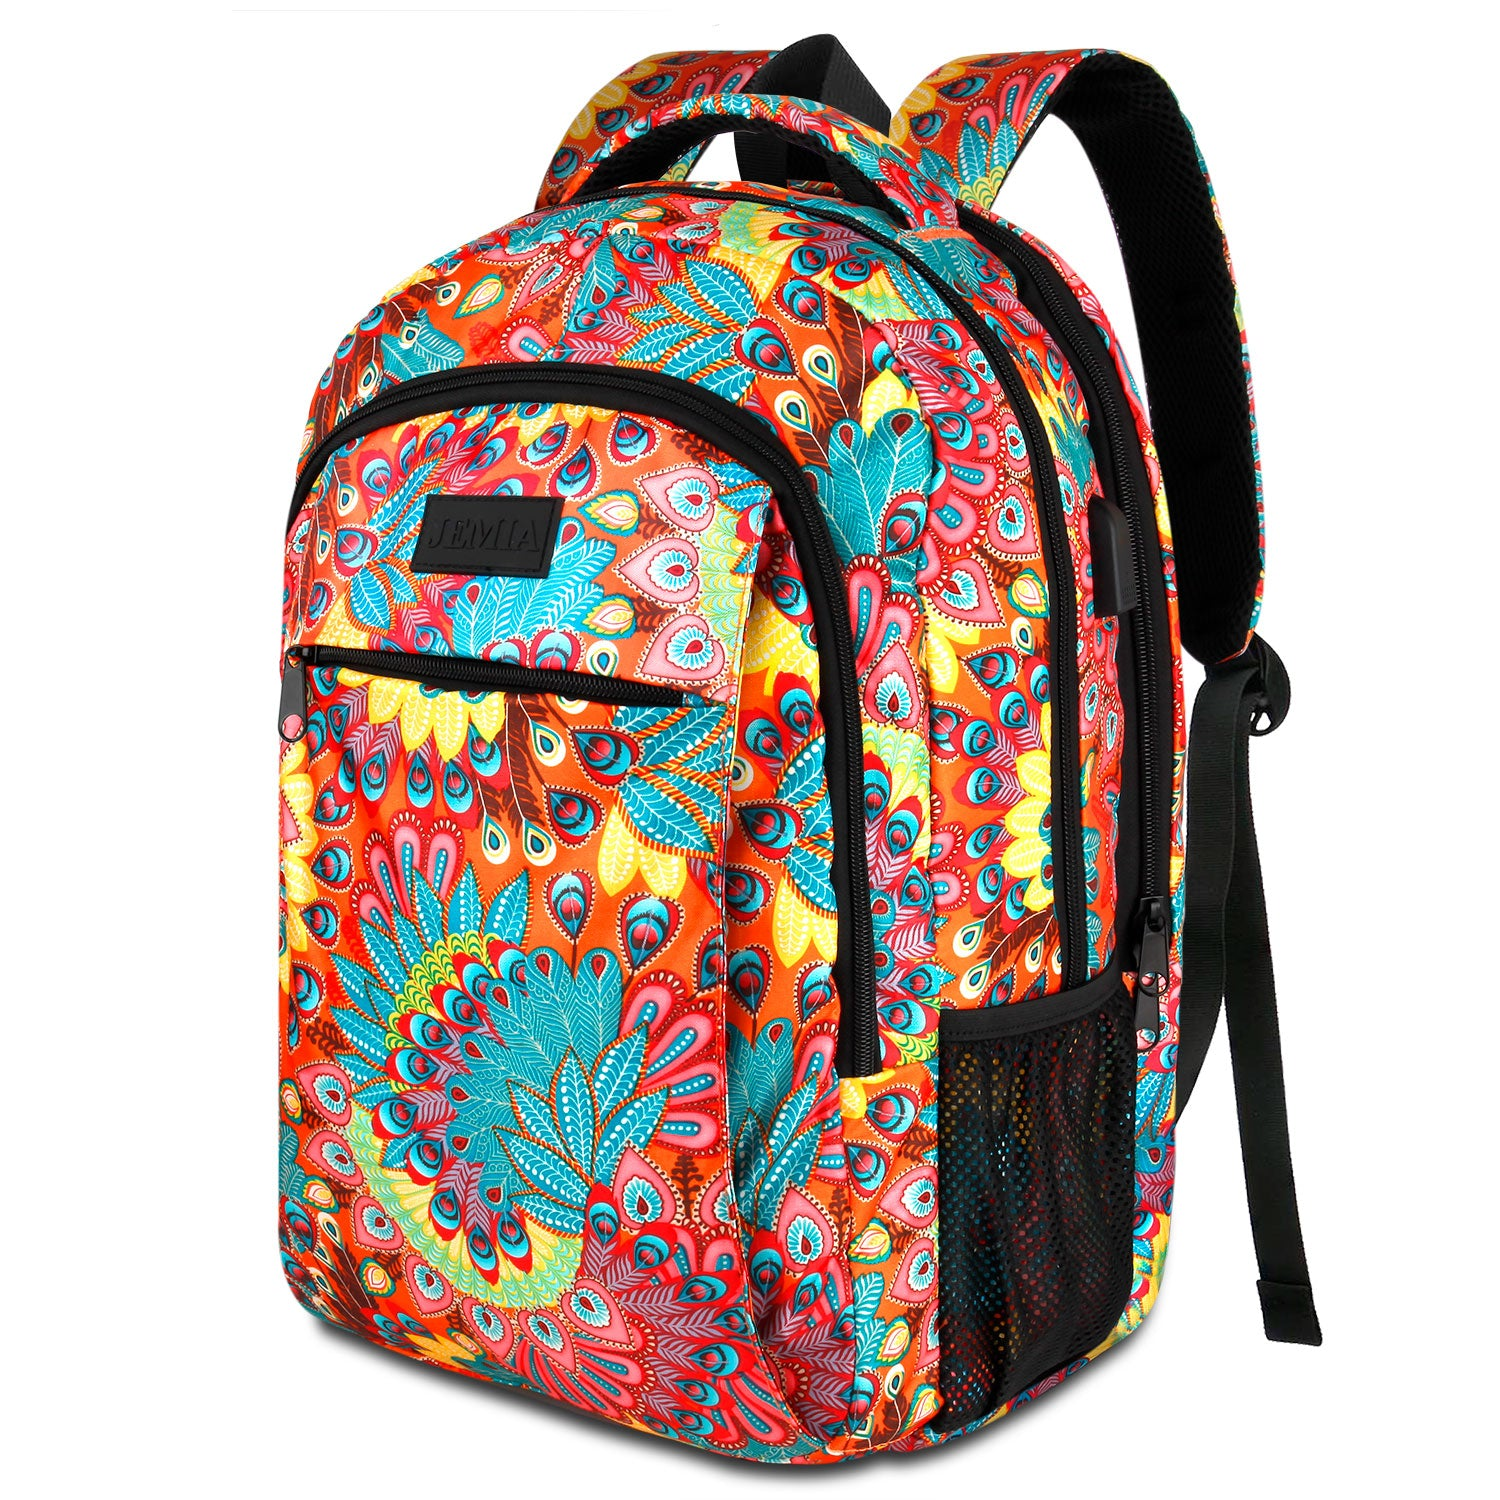 Multi Compartments Backpack for Multipurpose Travel (Peacock Feather, Polyester) - JEMIA Industrial Co. Ltd